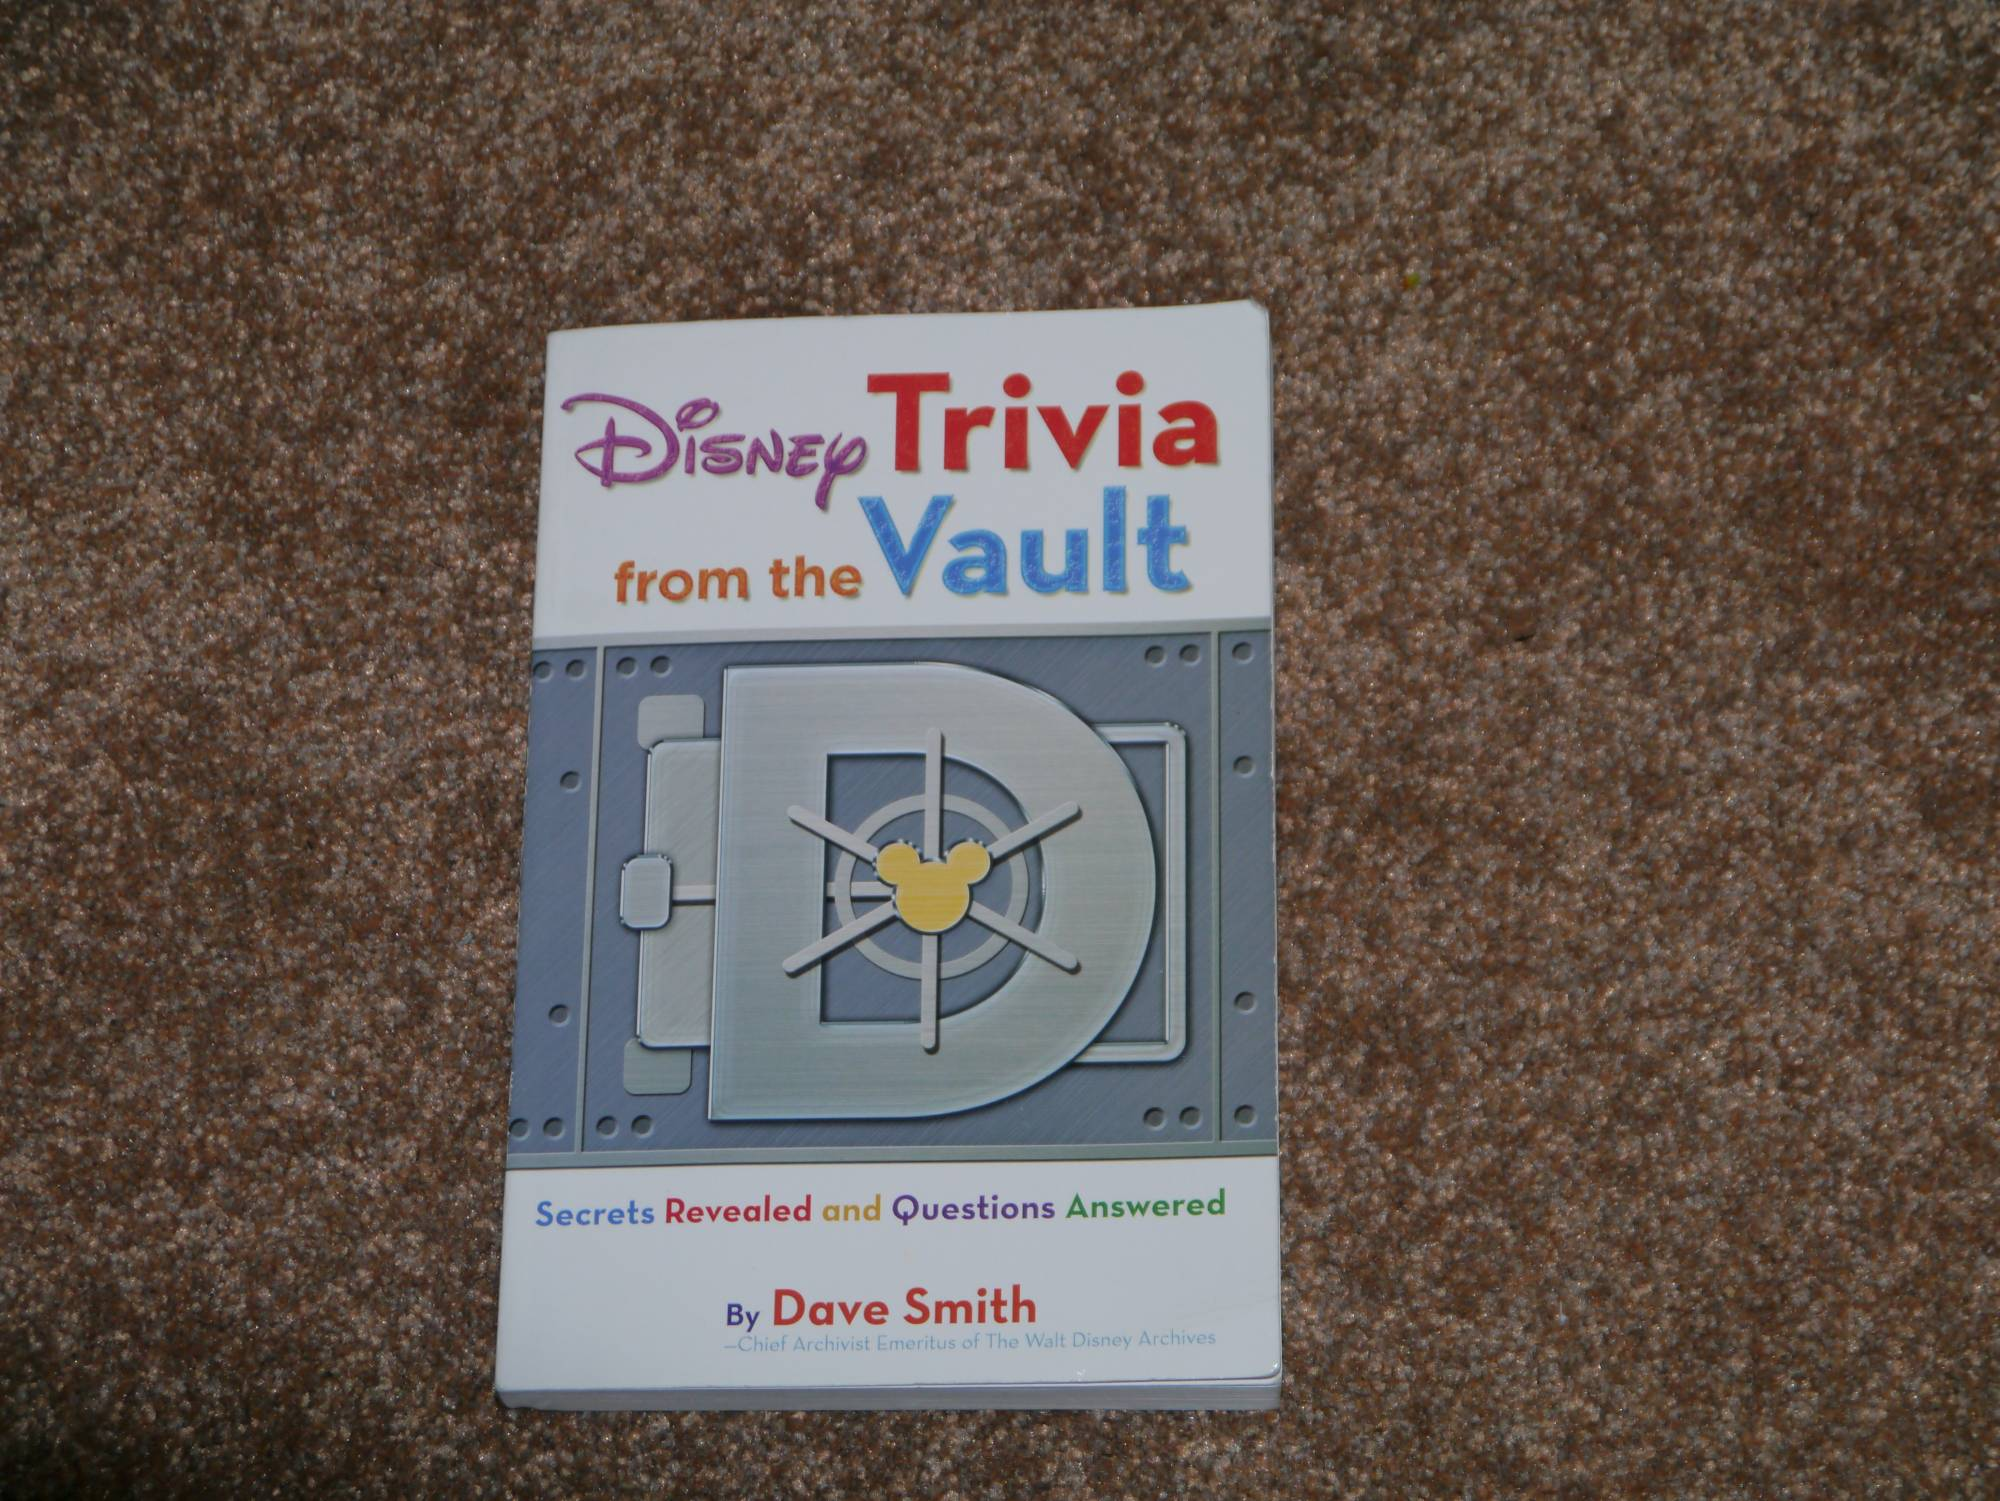 Brush up on your Disney Trivia with this review of 'Disney Trivia from The Vault' by Dave Smith | PassPorter.com